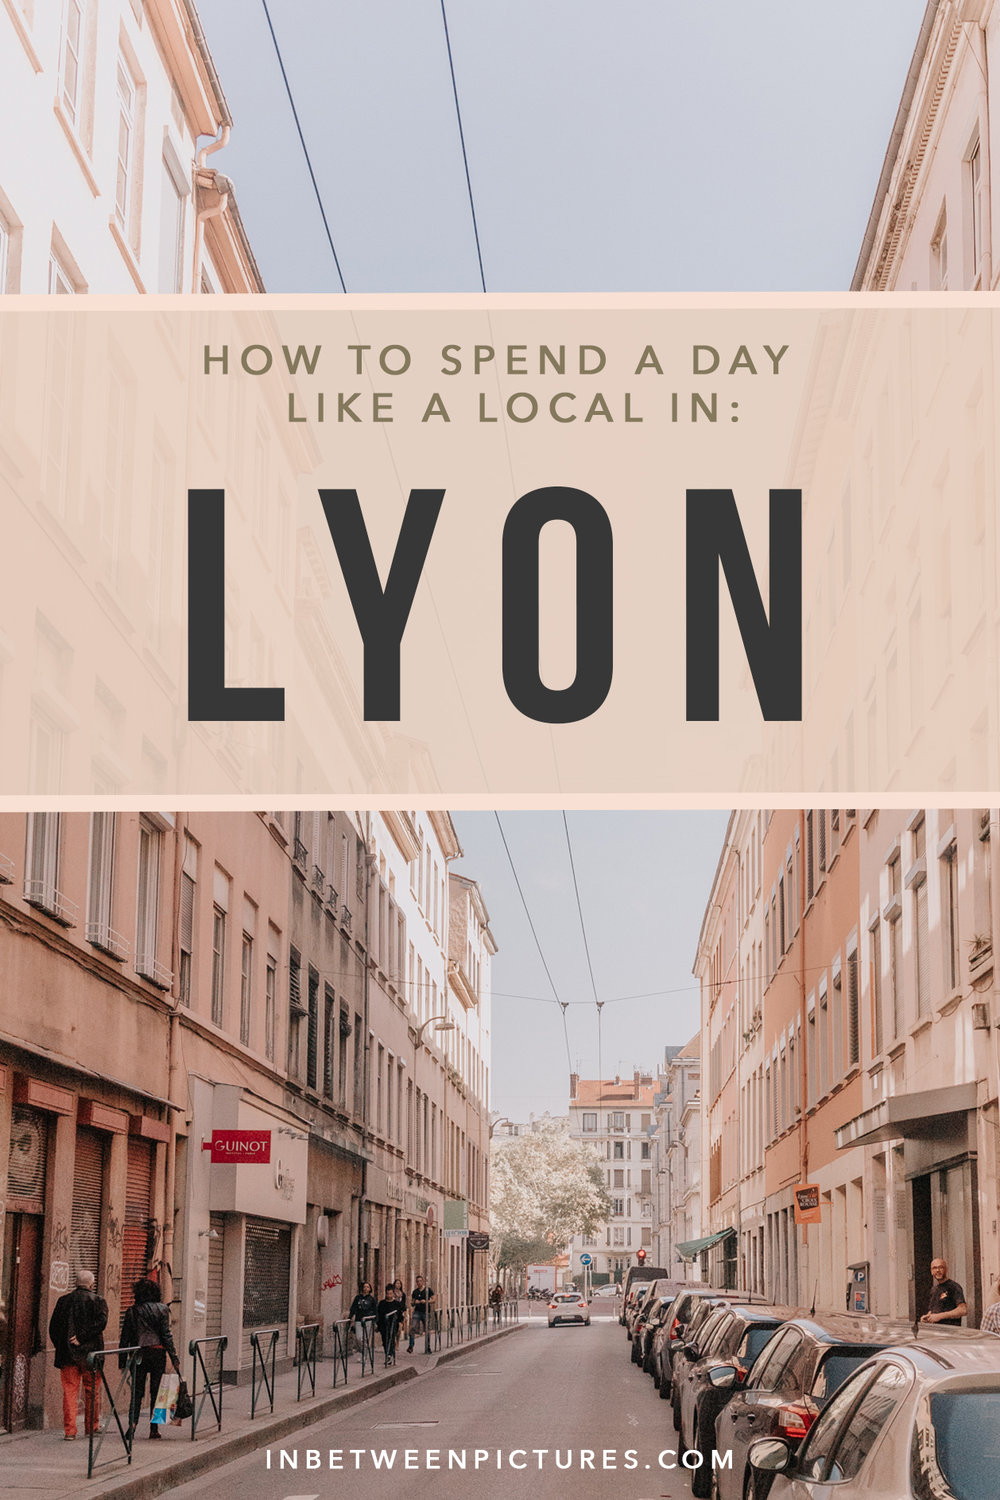 How To Spend a Day Like a Local In Lyon